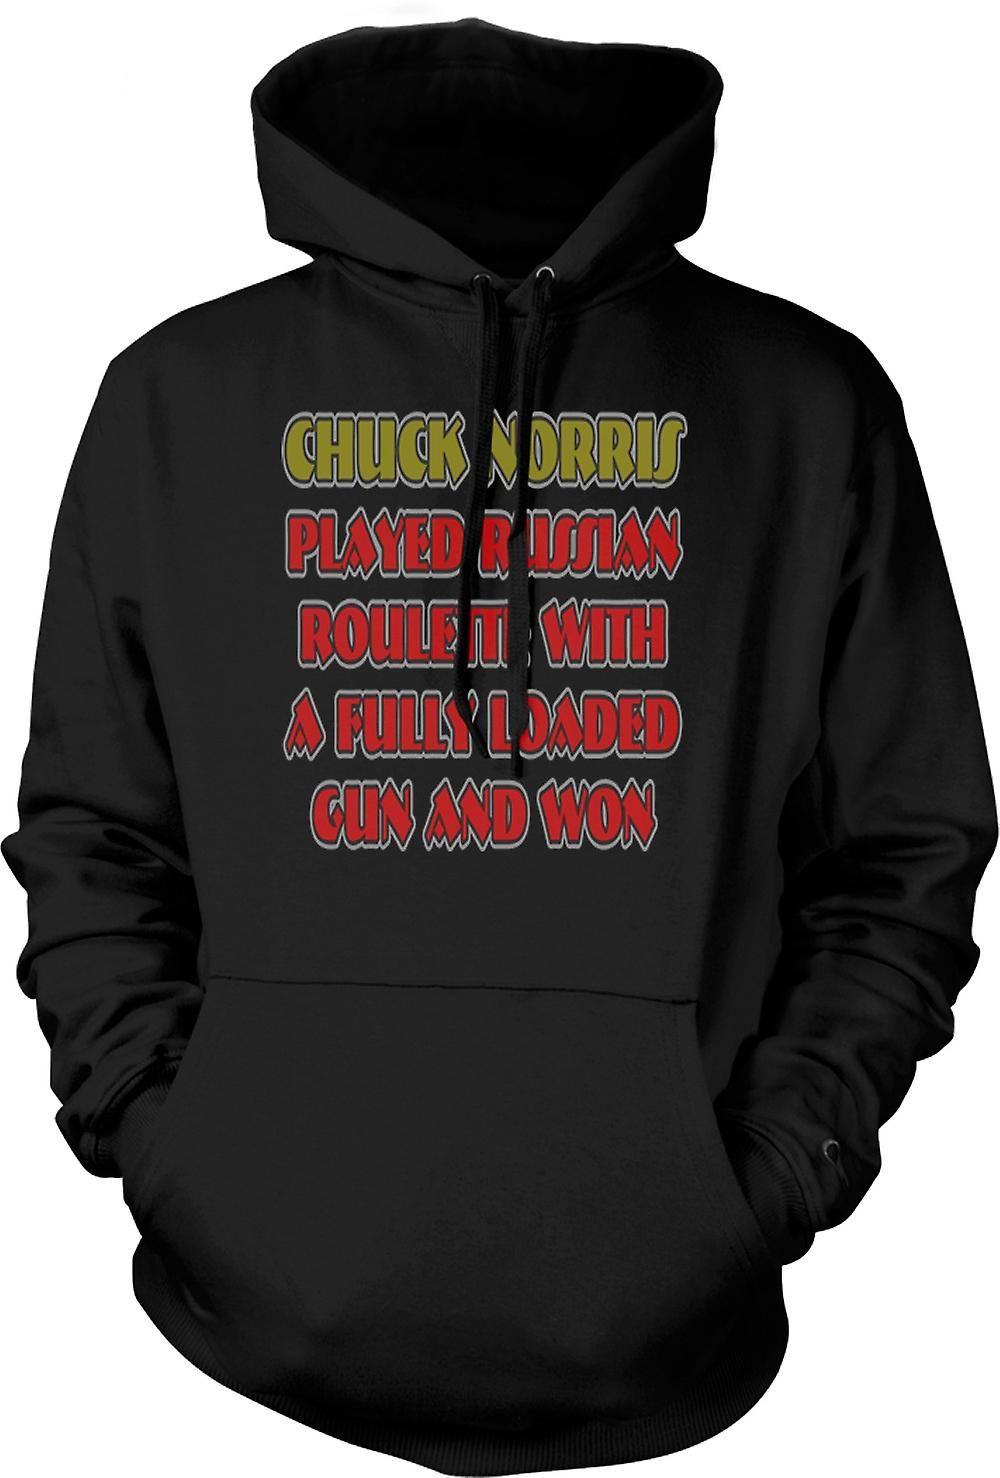 Mens Hoodie - Chuck Norris Played Russian Roulette - Funny